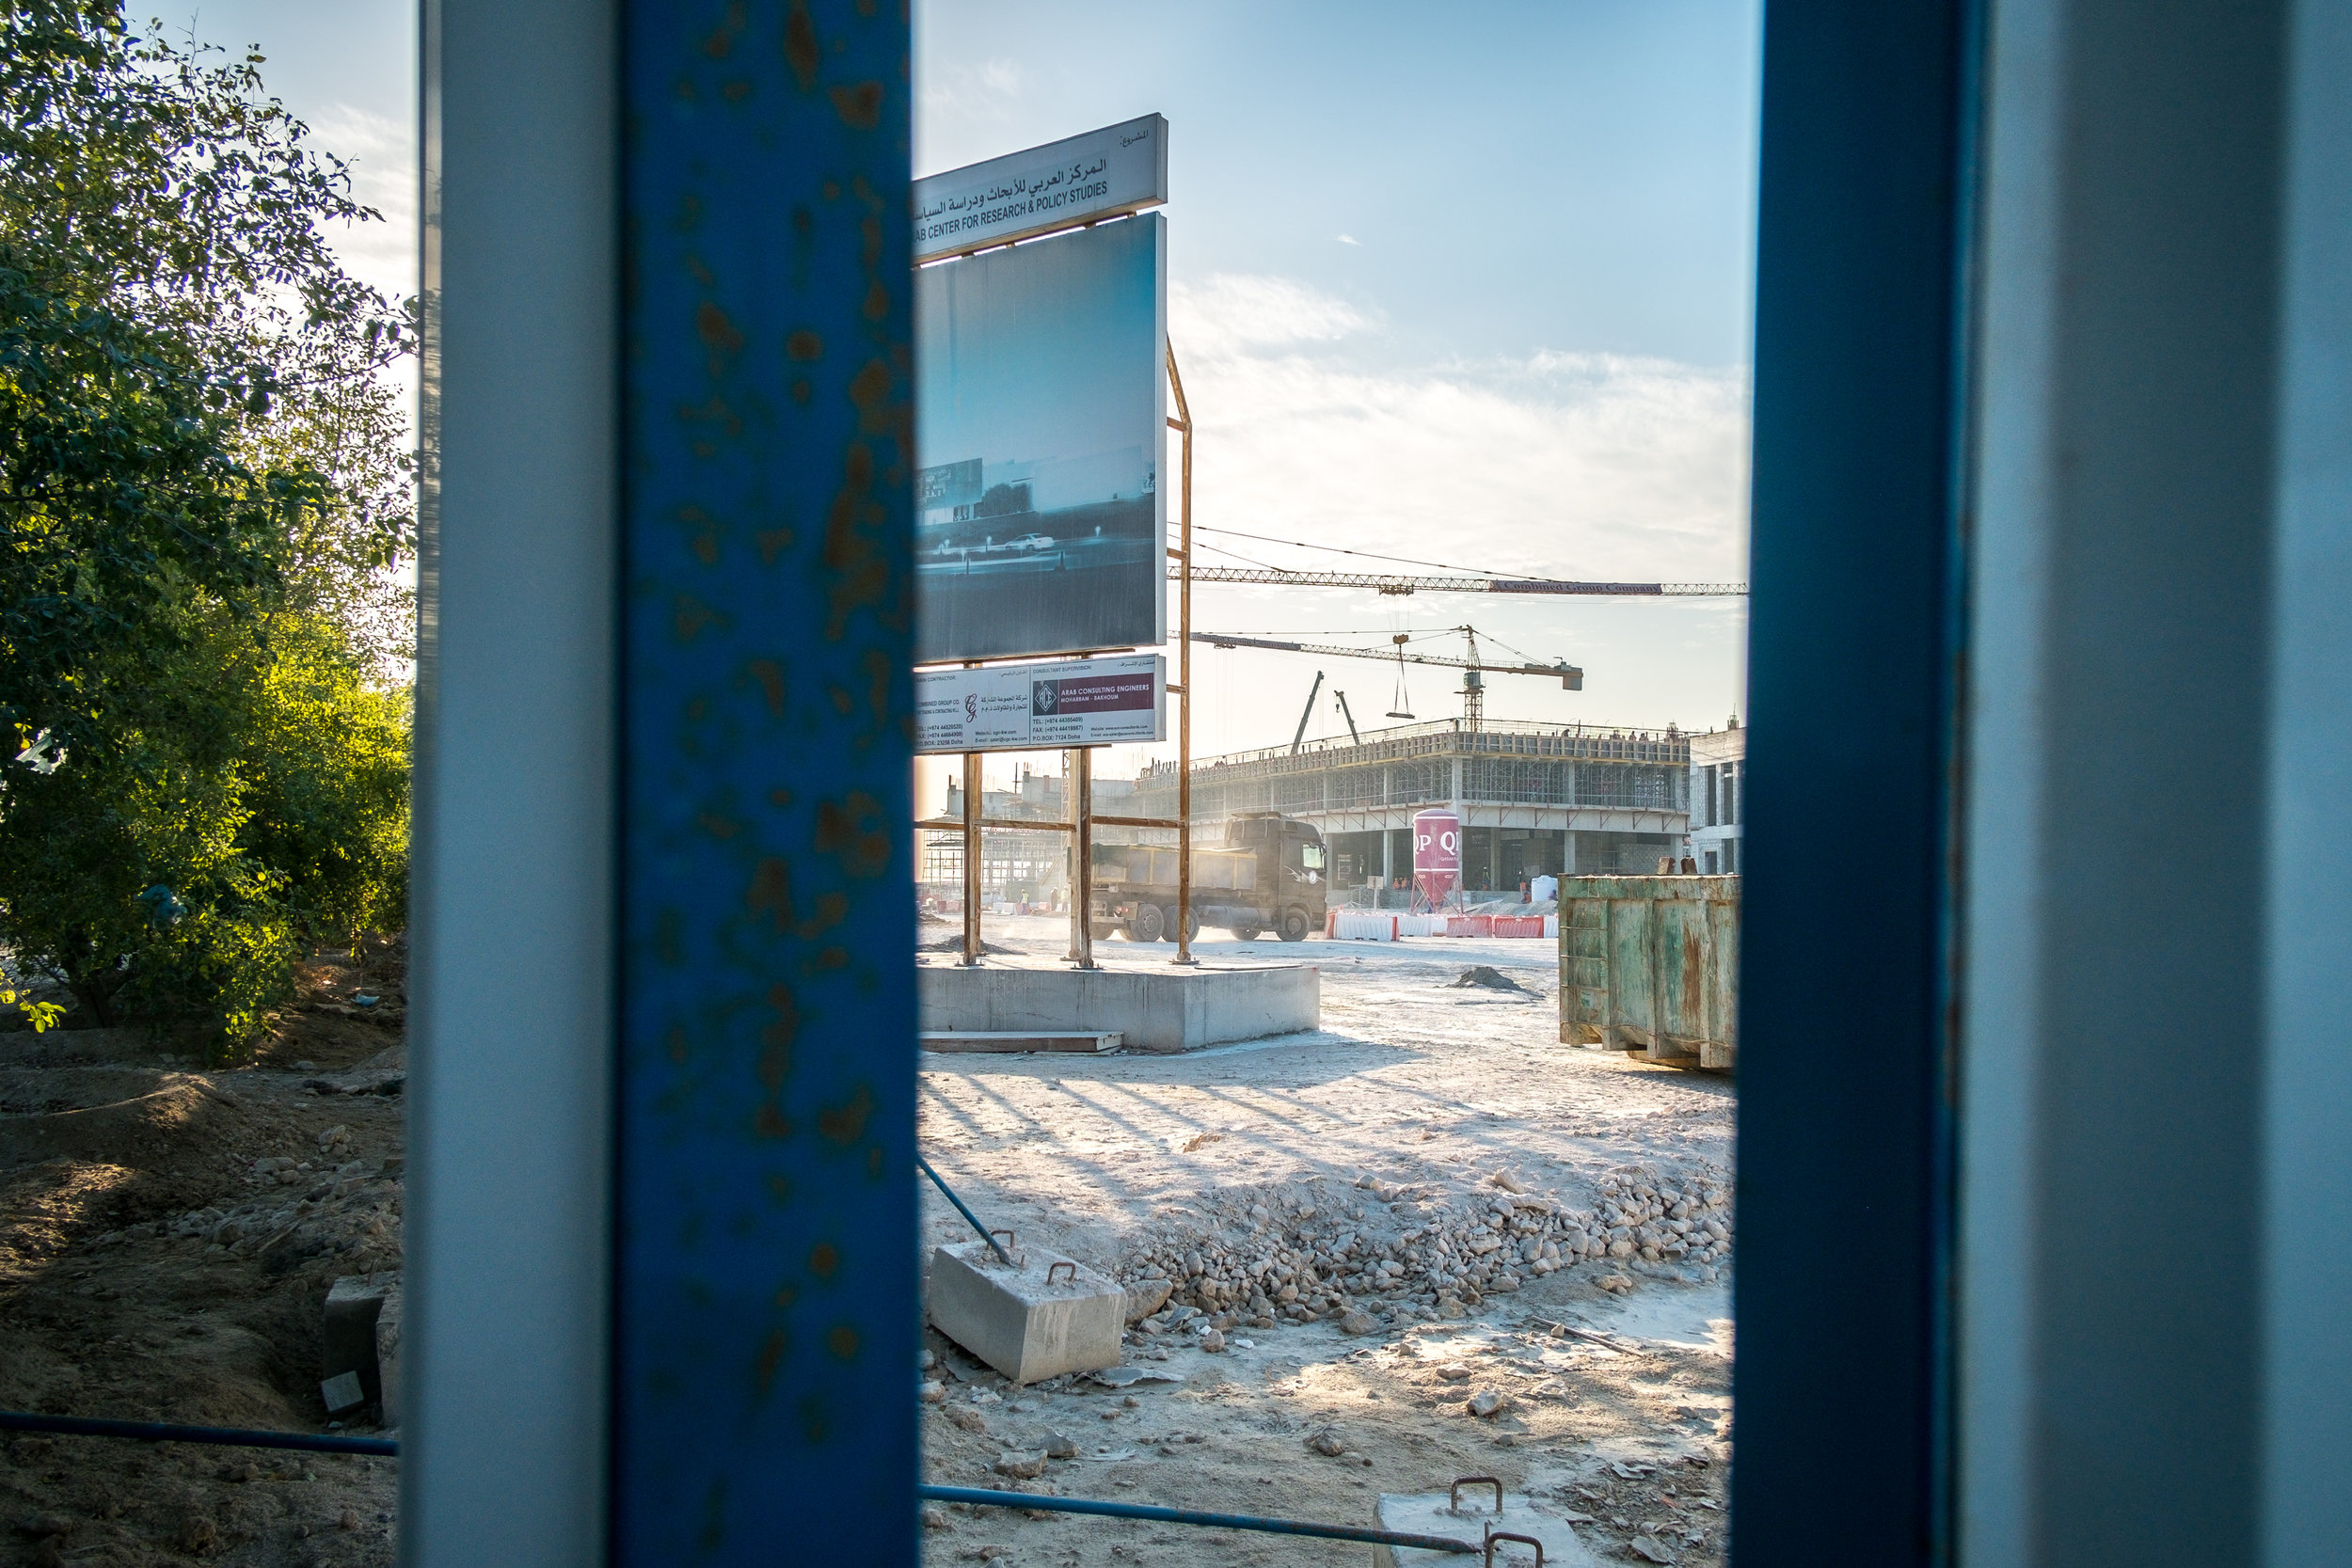 A construction site for the Arab Center for Research and Policy Studies is seen through a crack in the partition.